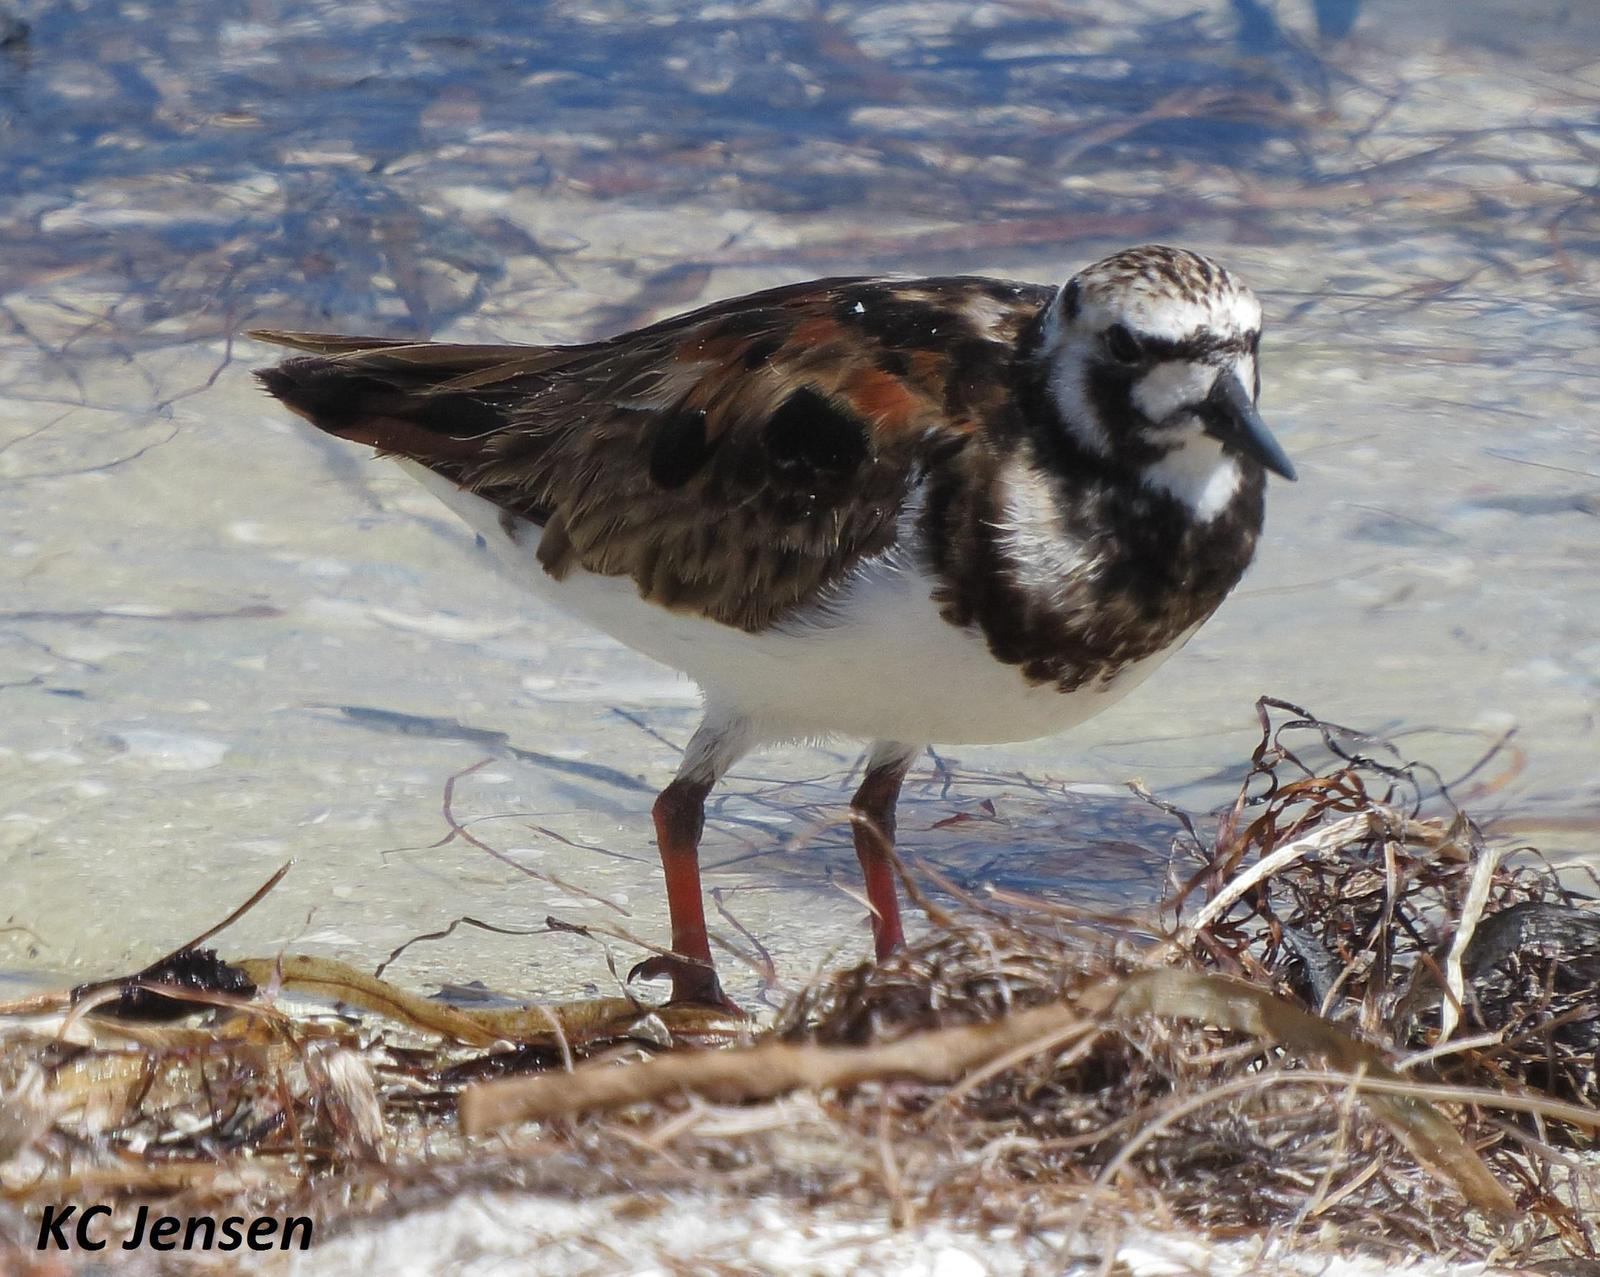 Ruddy Turnstone Photo by Kent Jensen